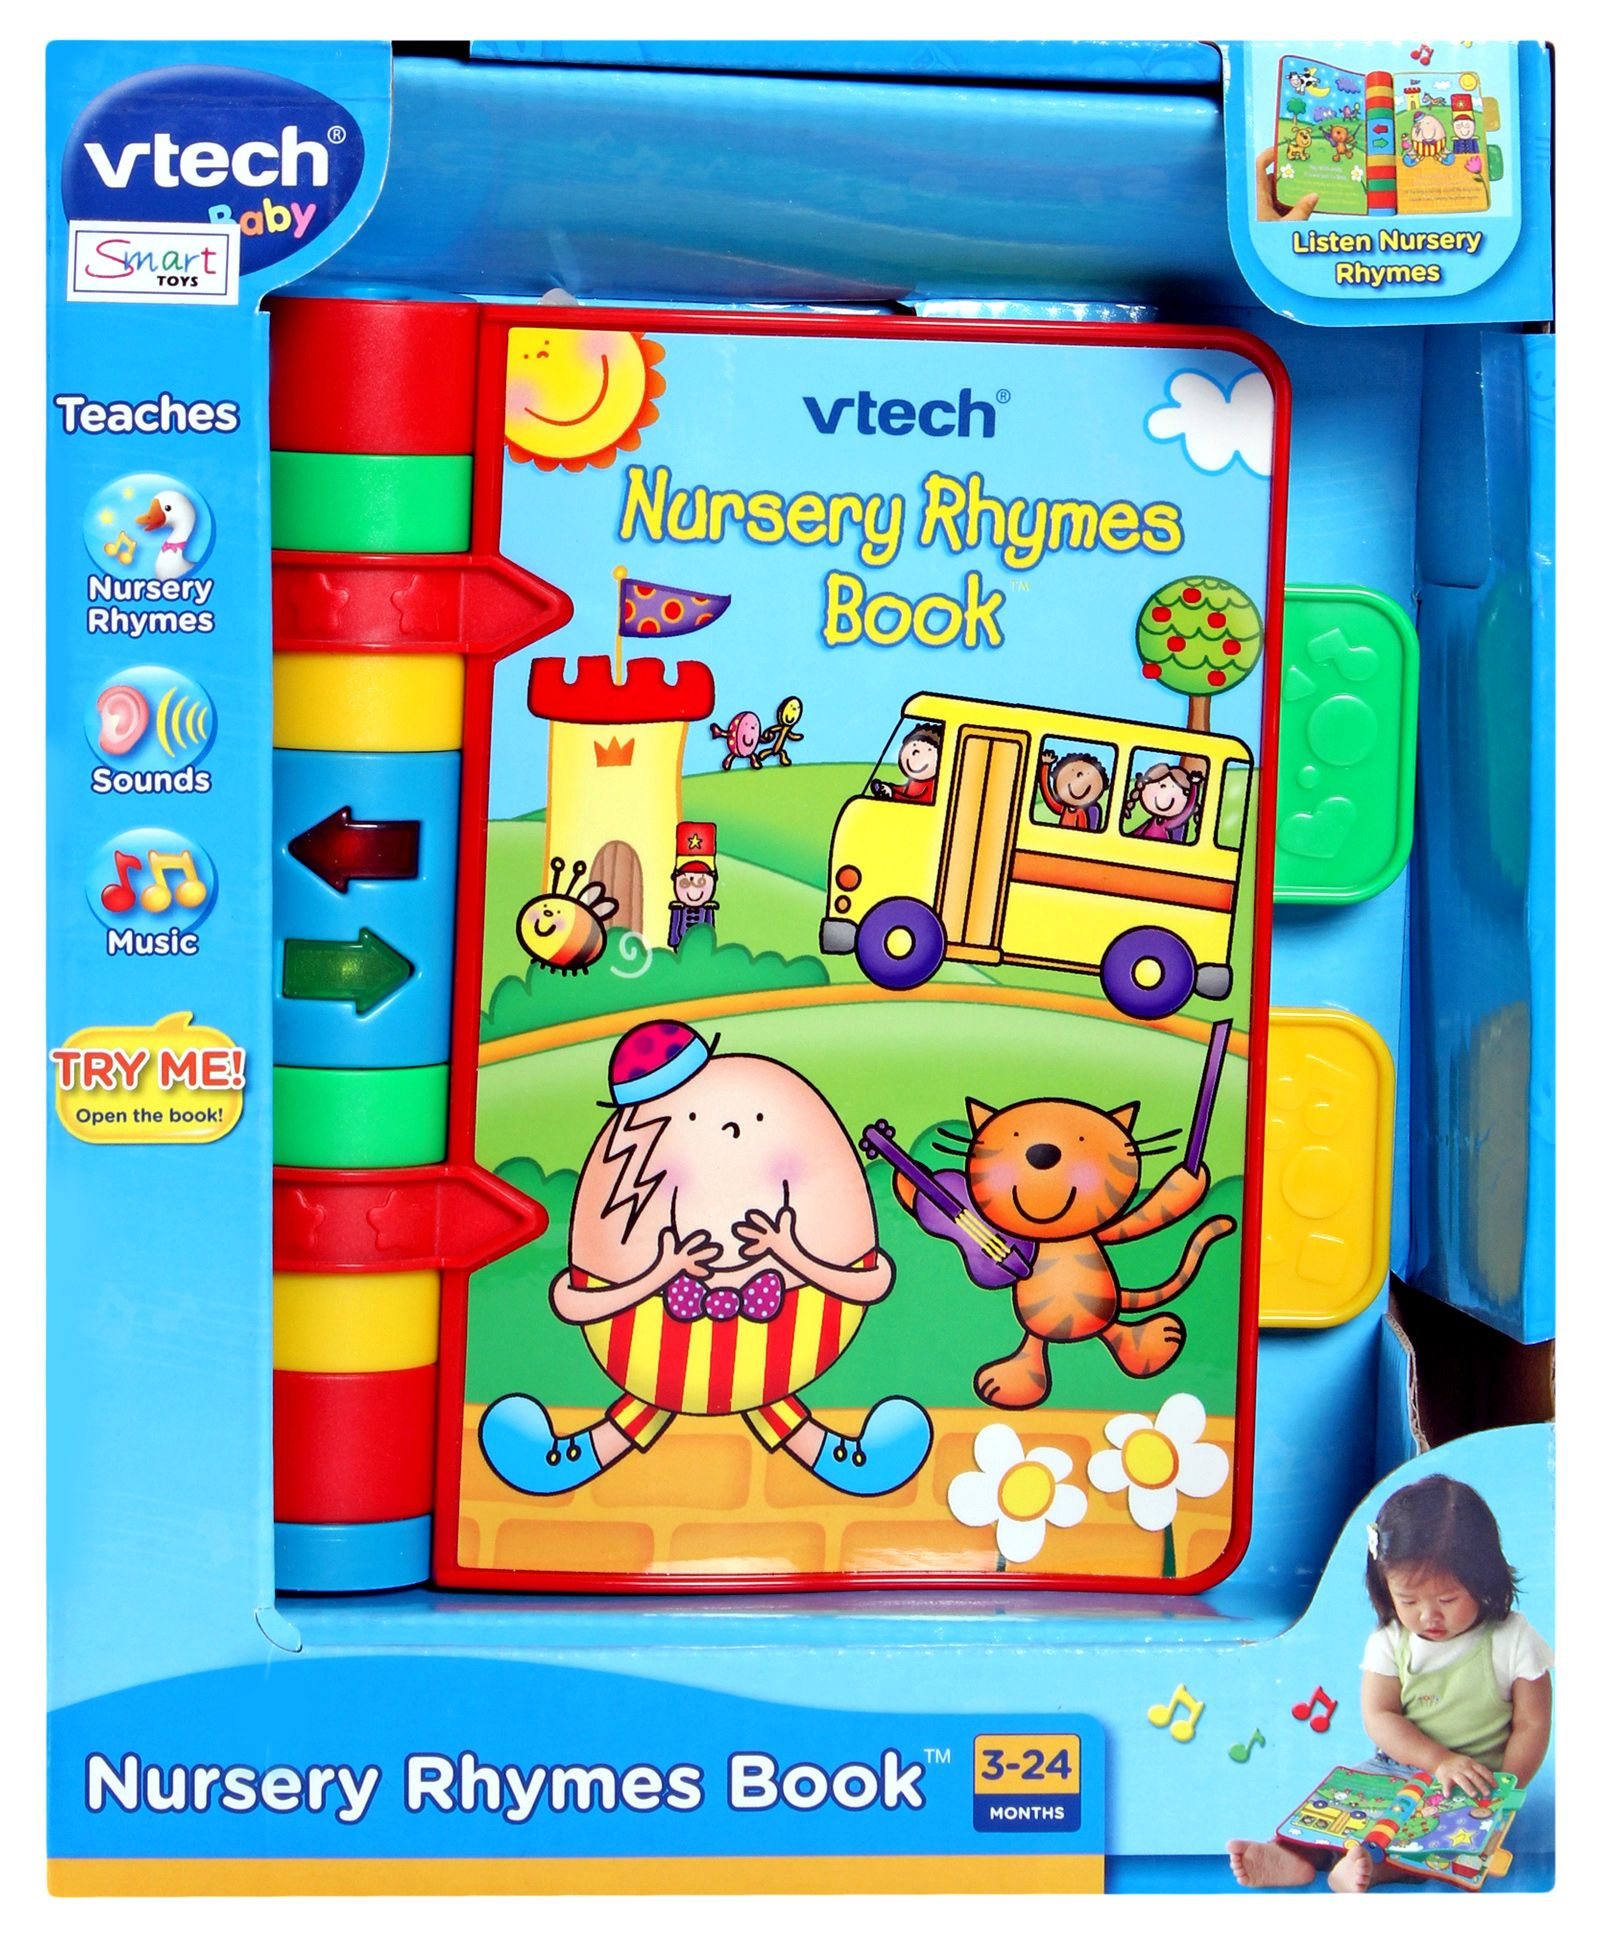 Nursery Rhymes Book Best Educational Infant Toys Stores Singapore